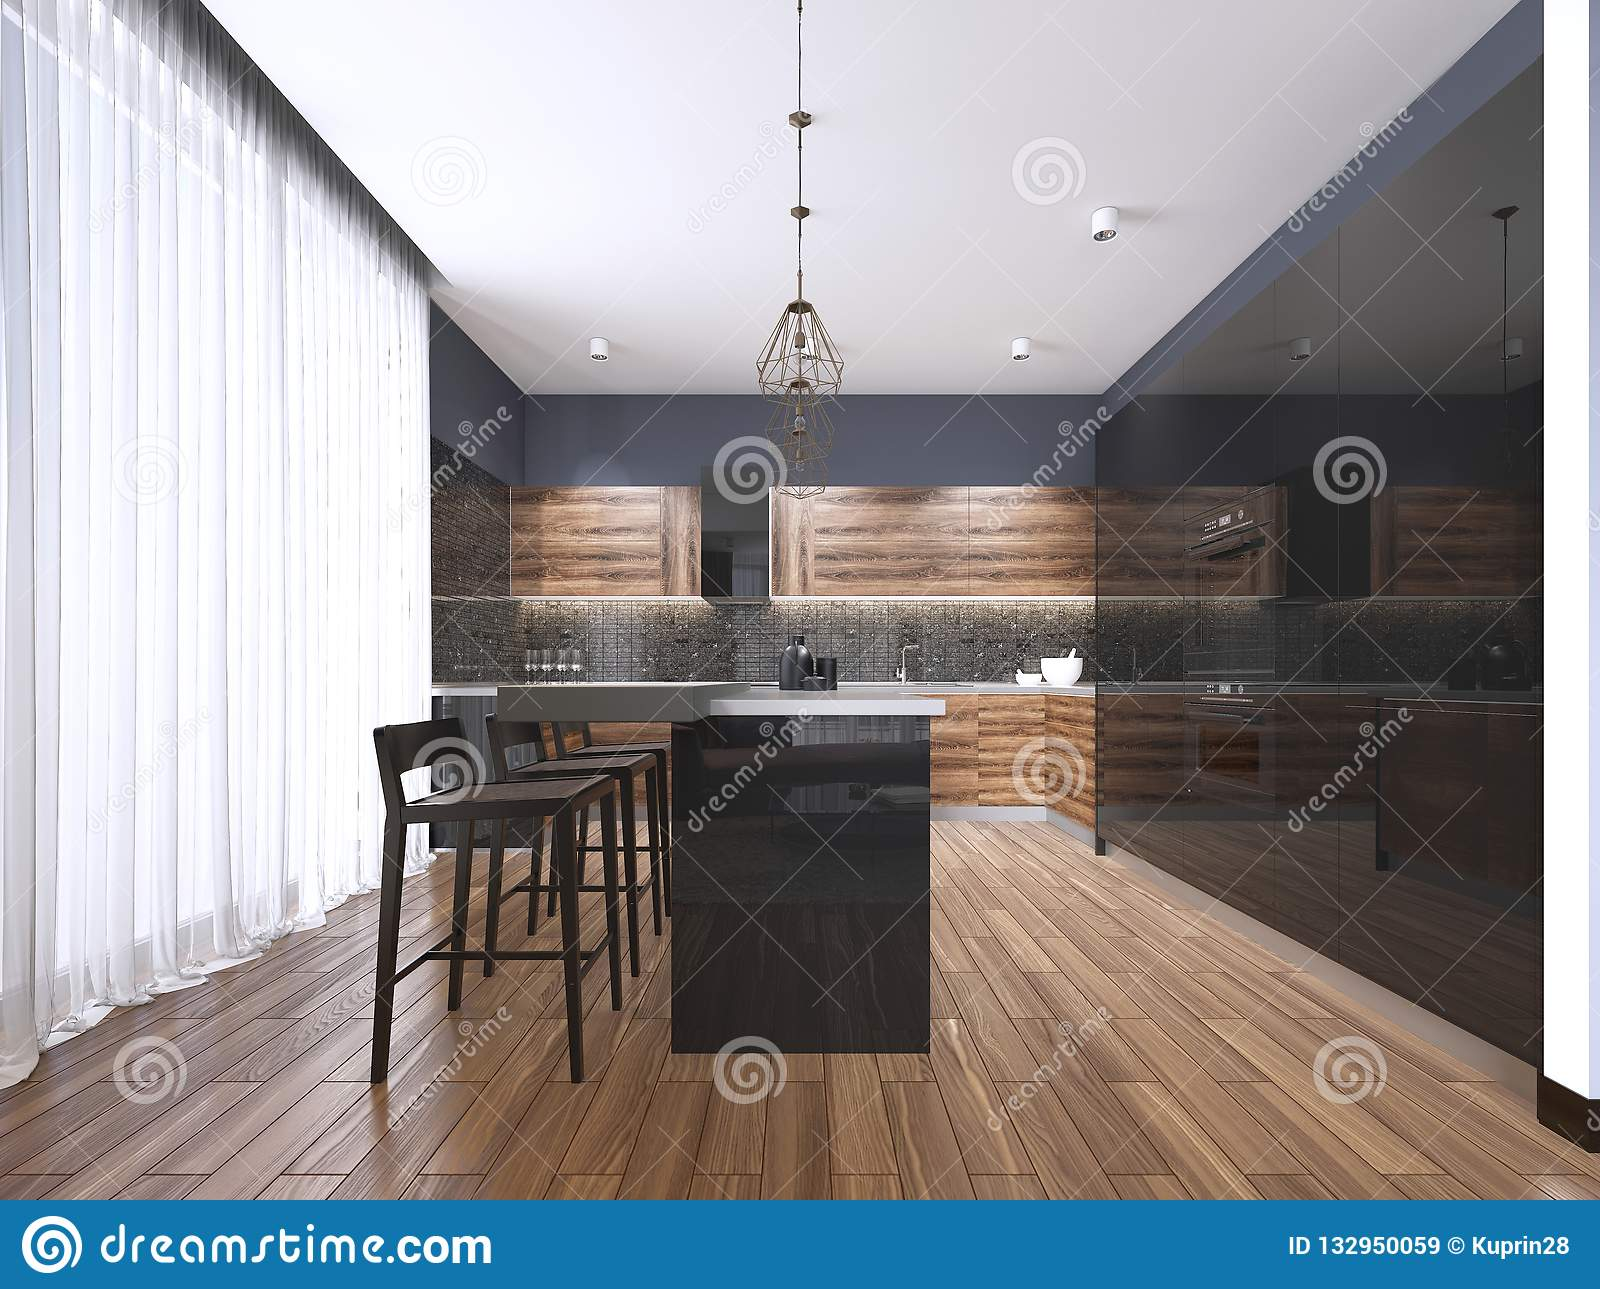 Modern Kitchen With Wood And Gloss Black Kitchen Cabinets Kitchen Island With Bar Stools Stone Countertops Built In Appliances Stock Illustration Illustration Of Northwest Dark 132950059